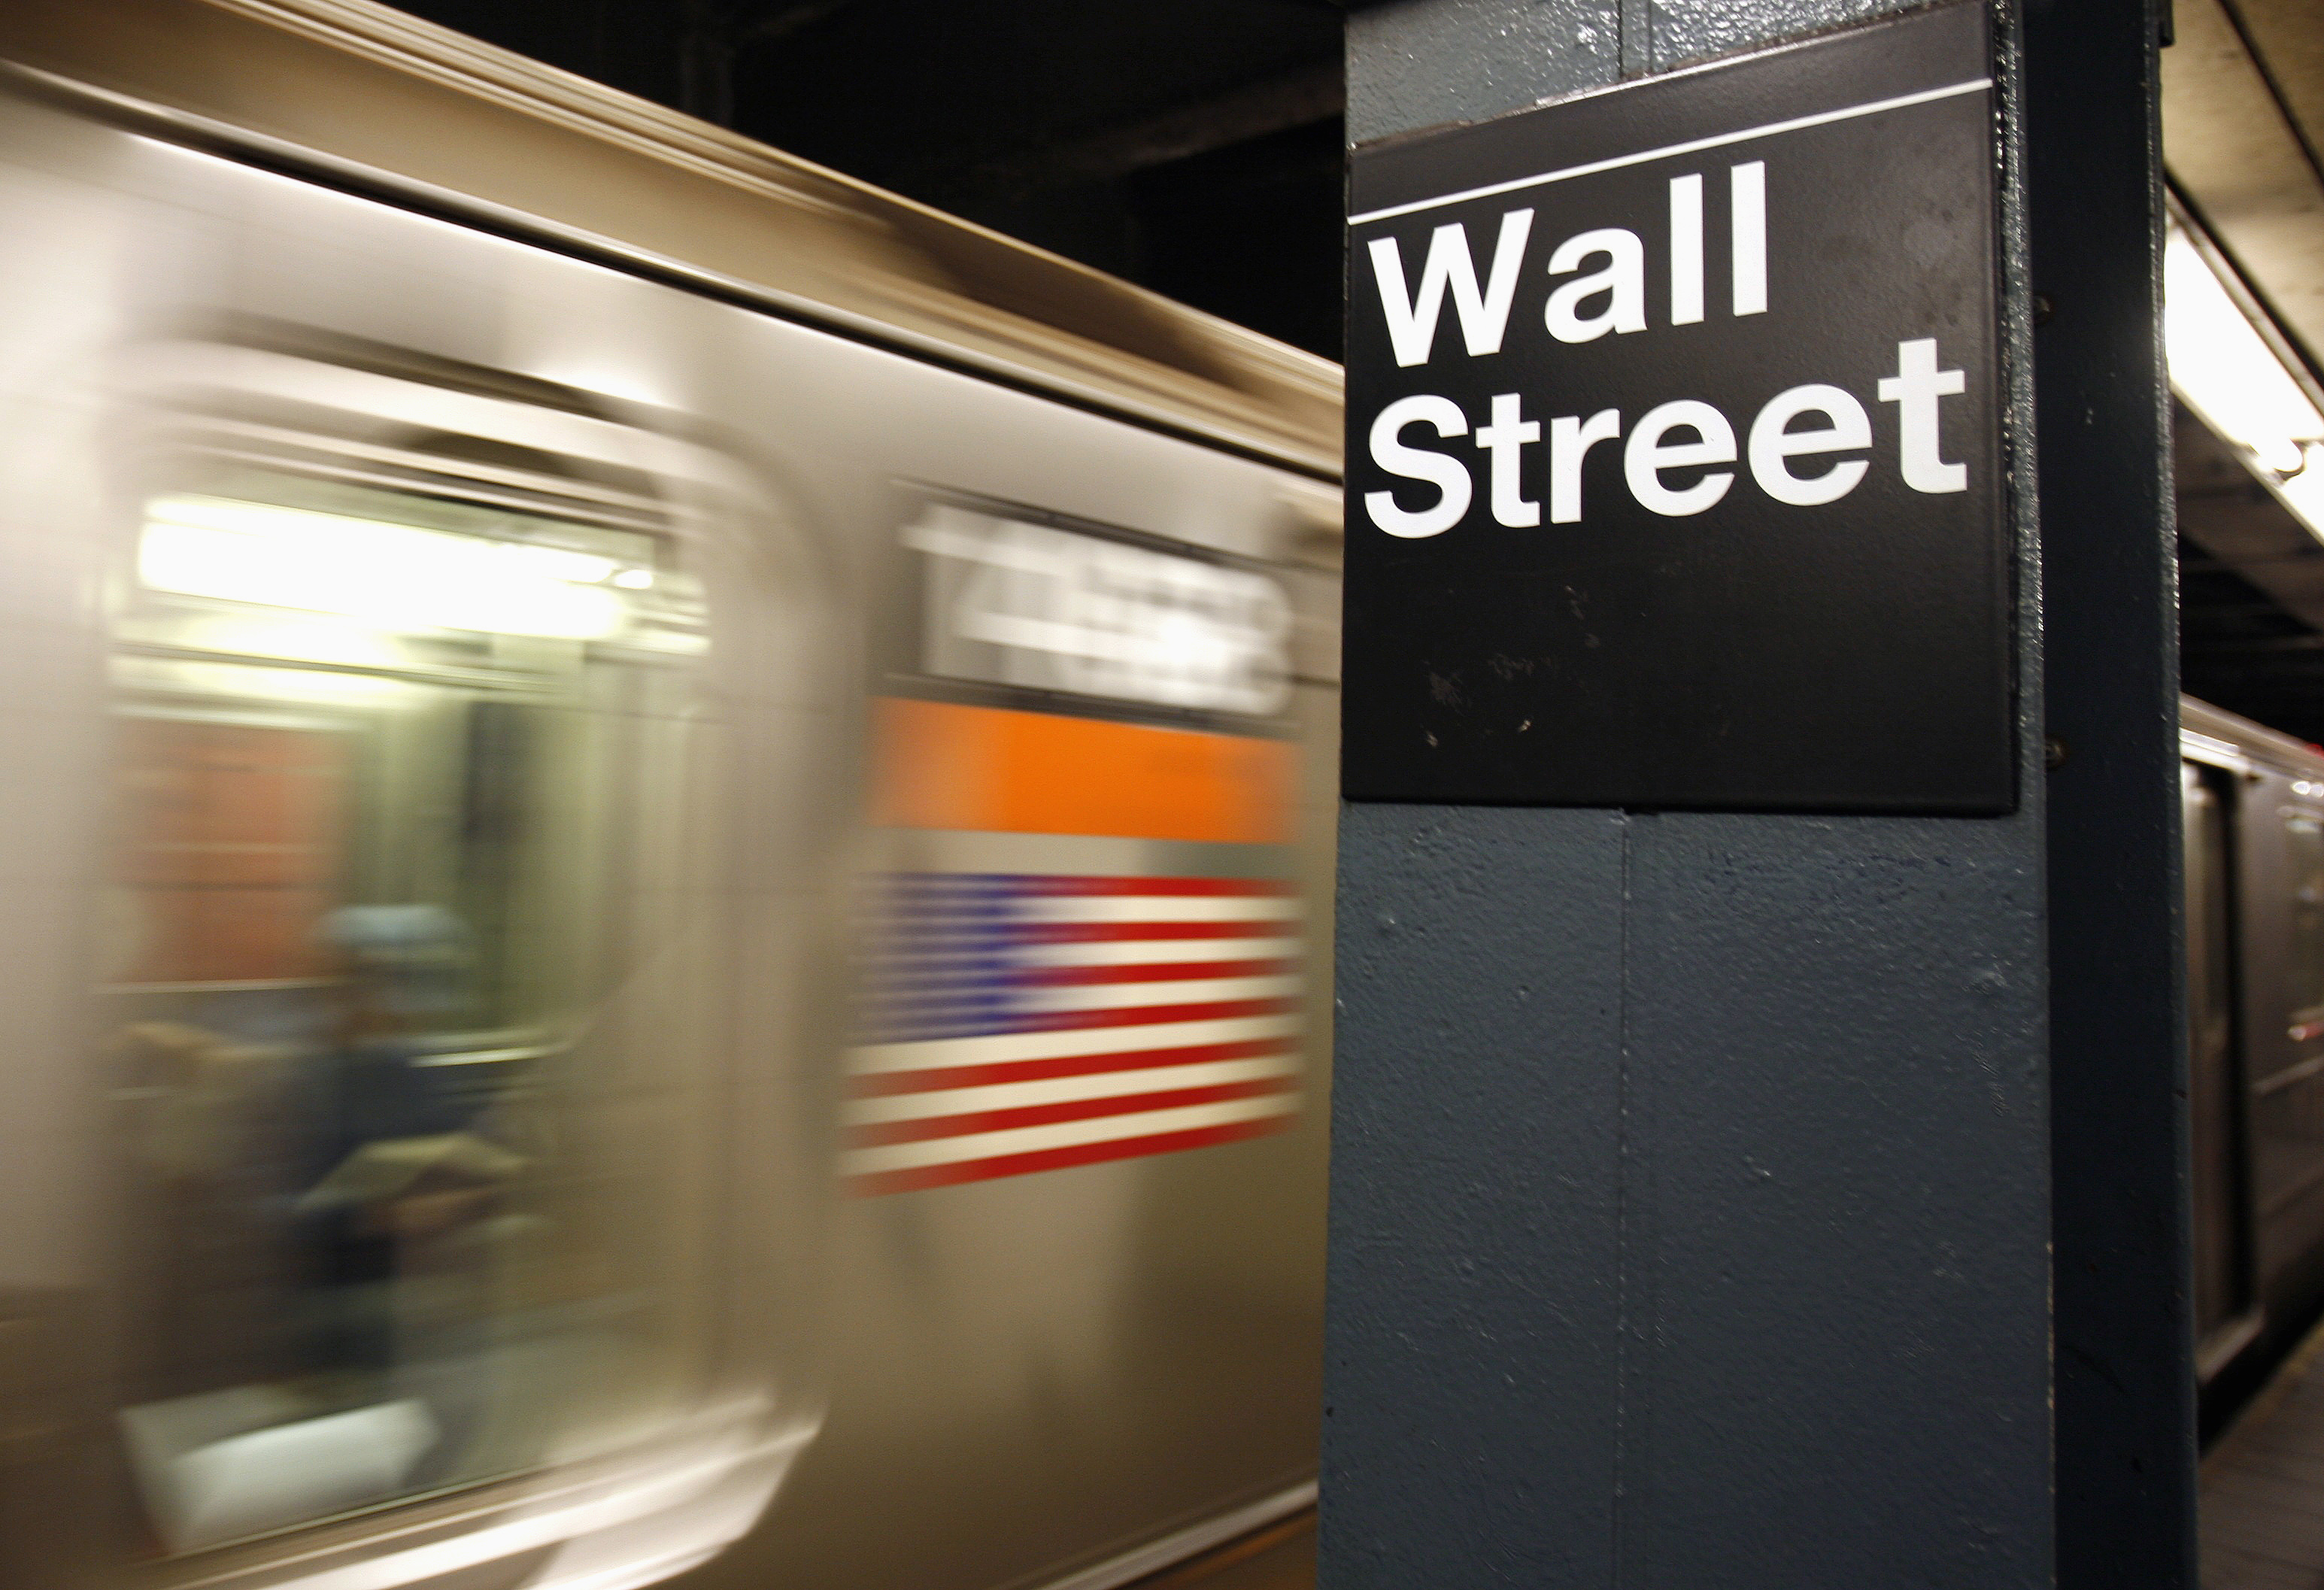 A Wall Street subway stop sign is seen in New York, October 10, 2008. REUTERS/Shannon Stapleton